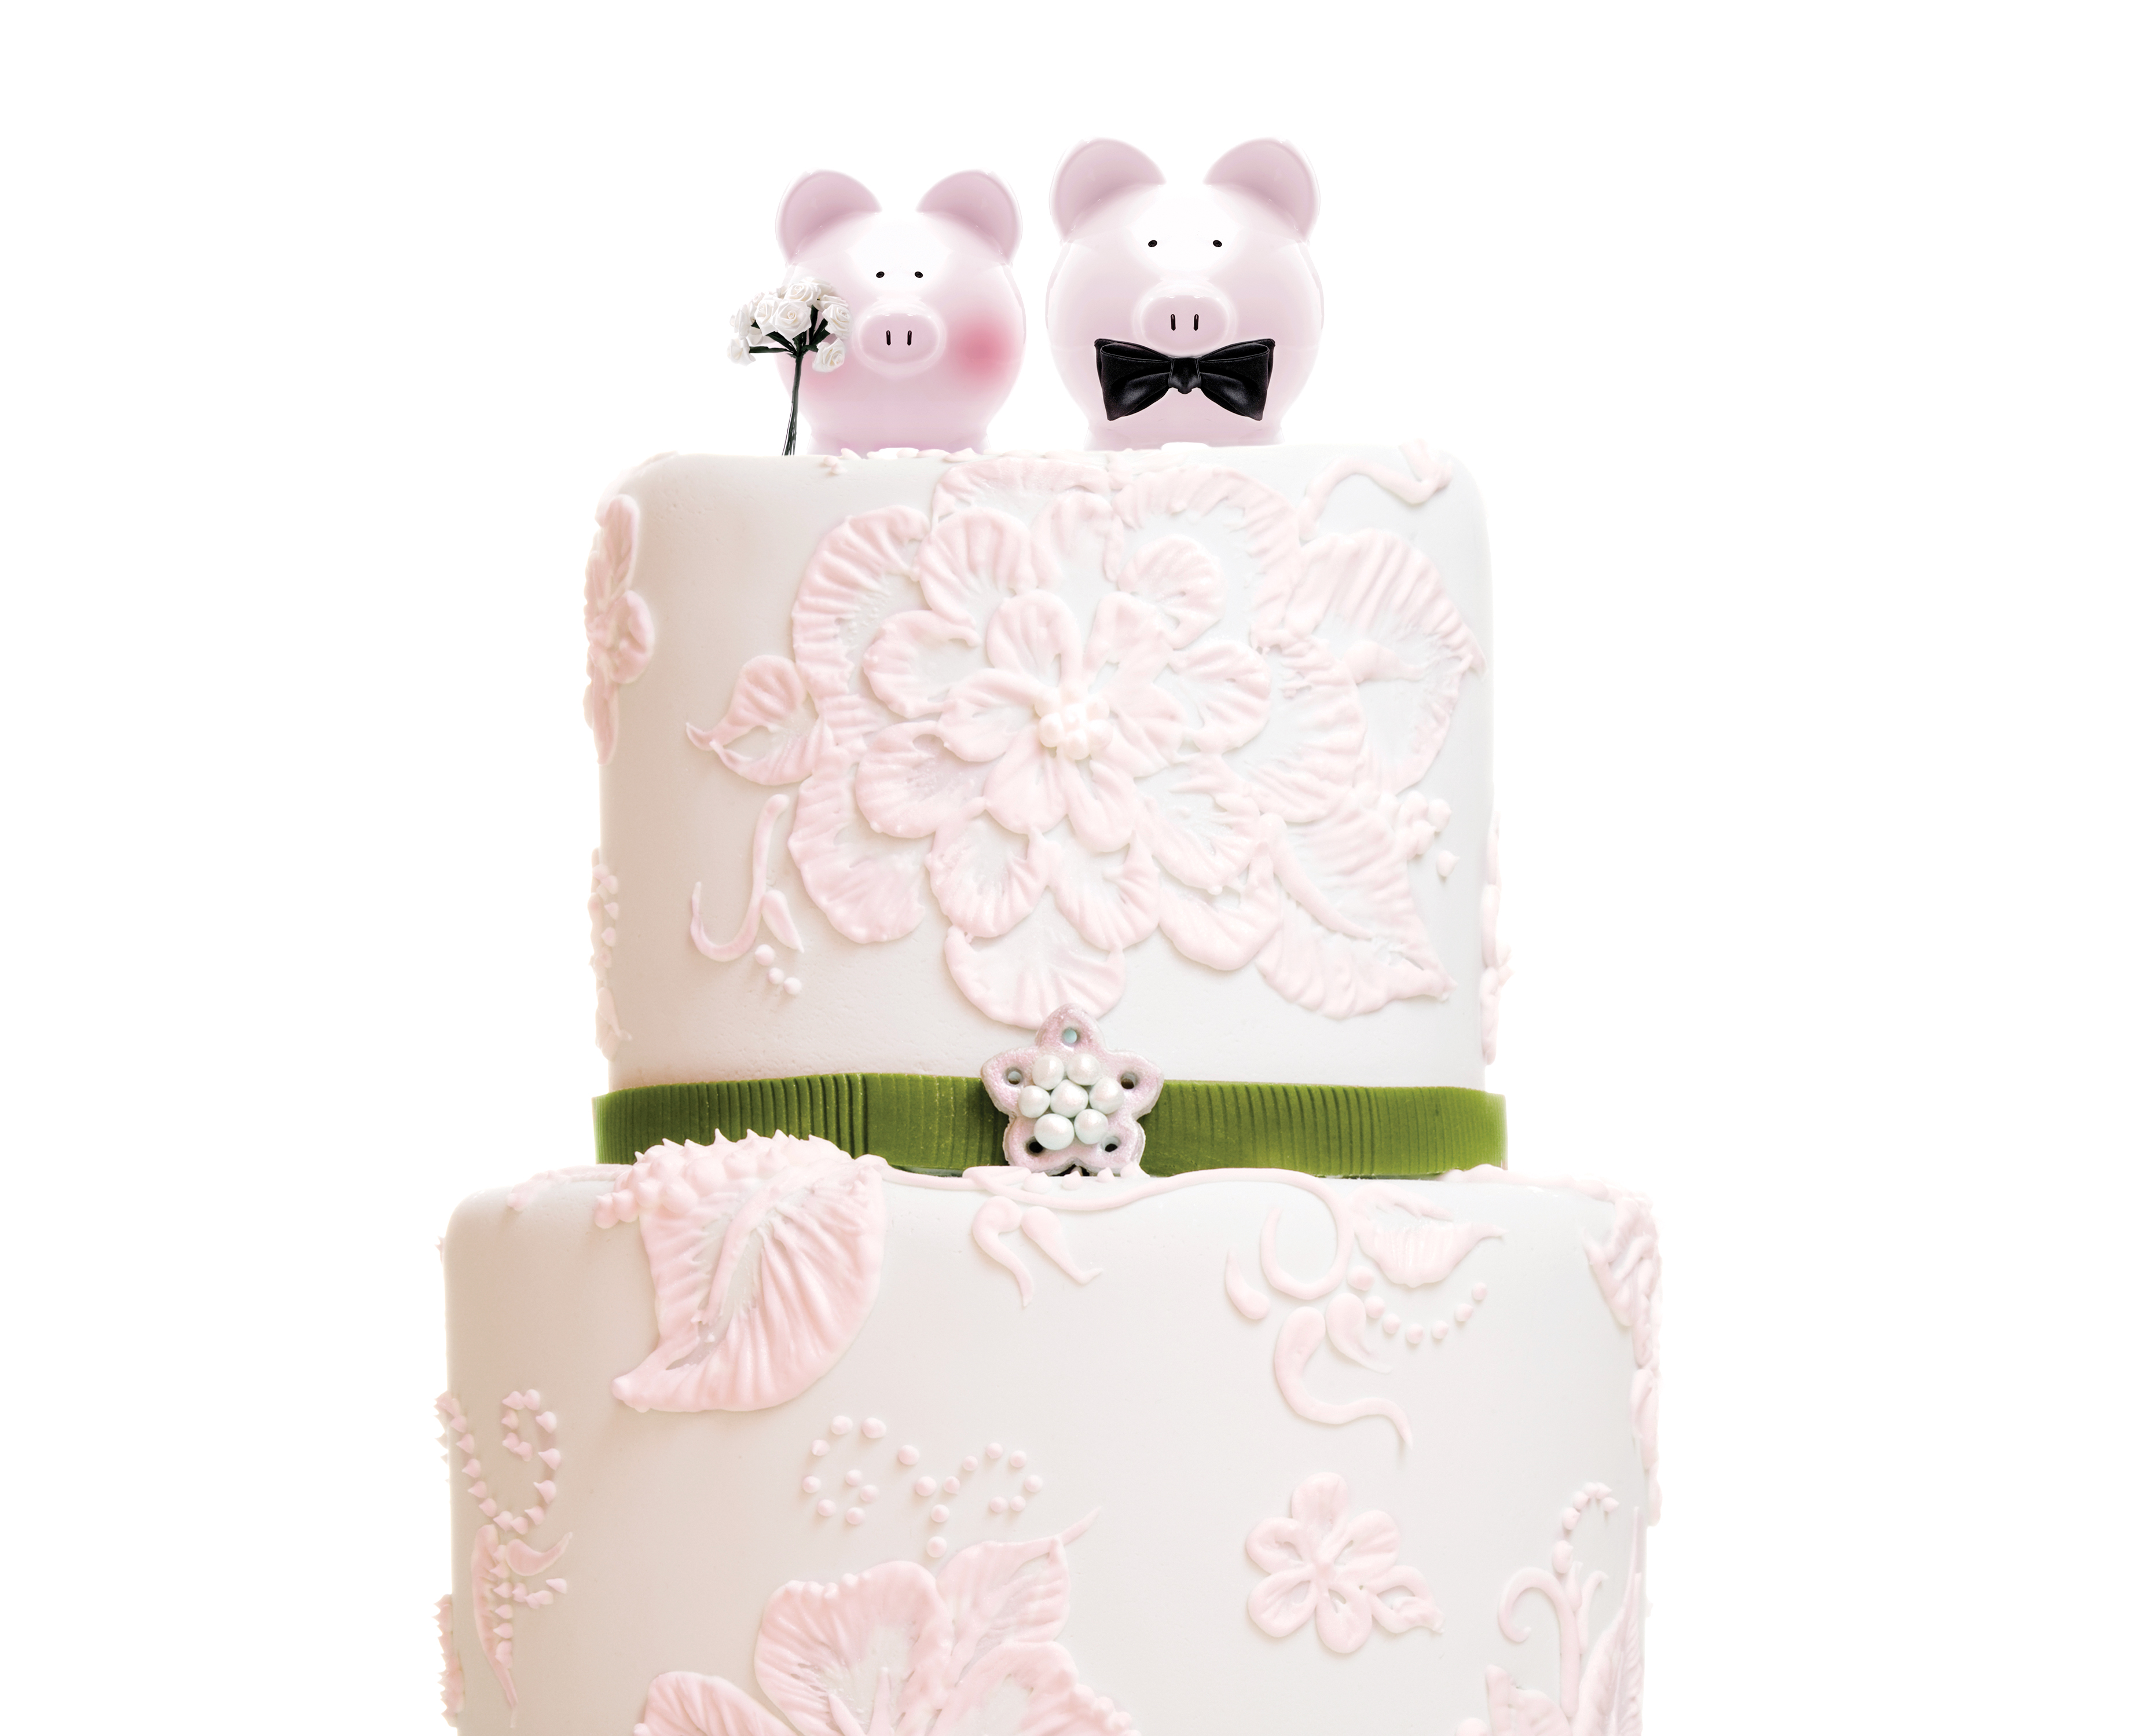 Wedding cake with pigs image for what do if you can't afford to go to a wedding